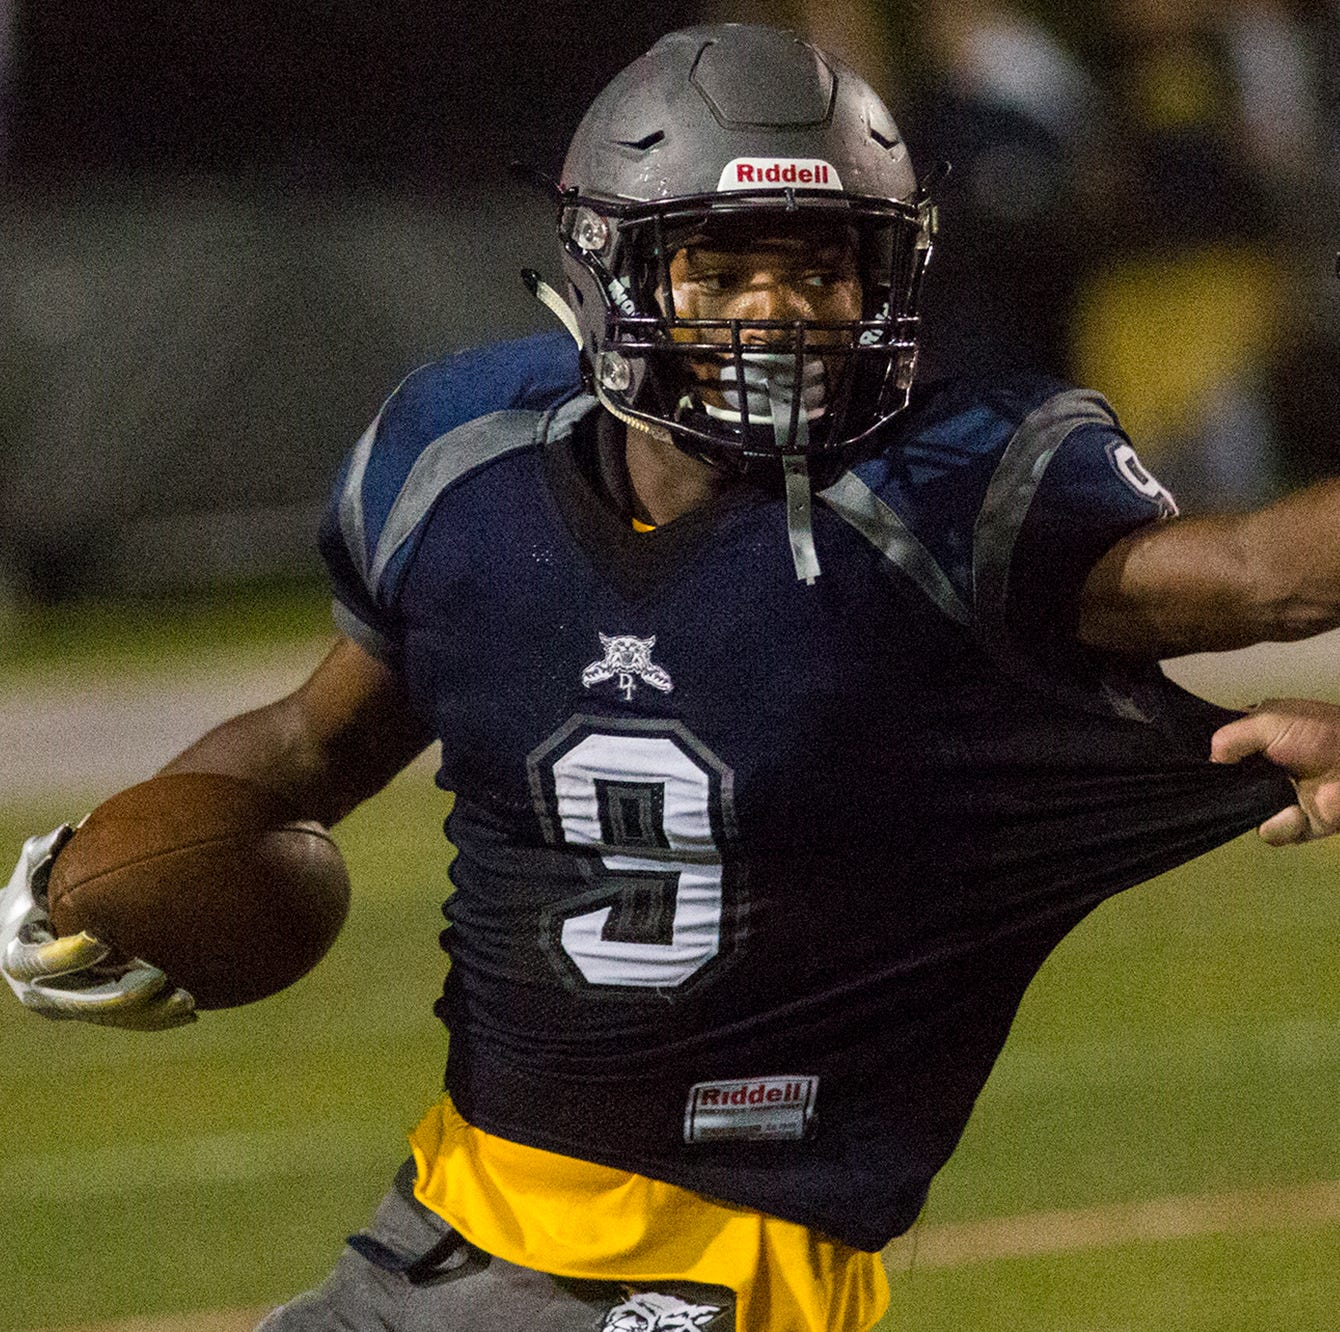 Record-setting year could be start of bright future for York County football